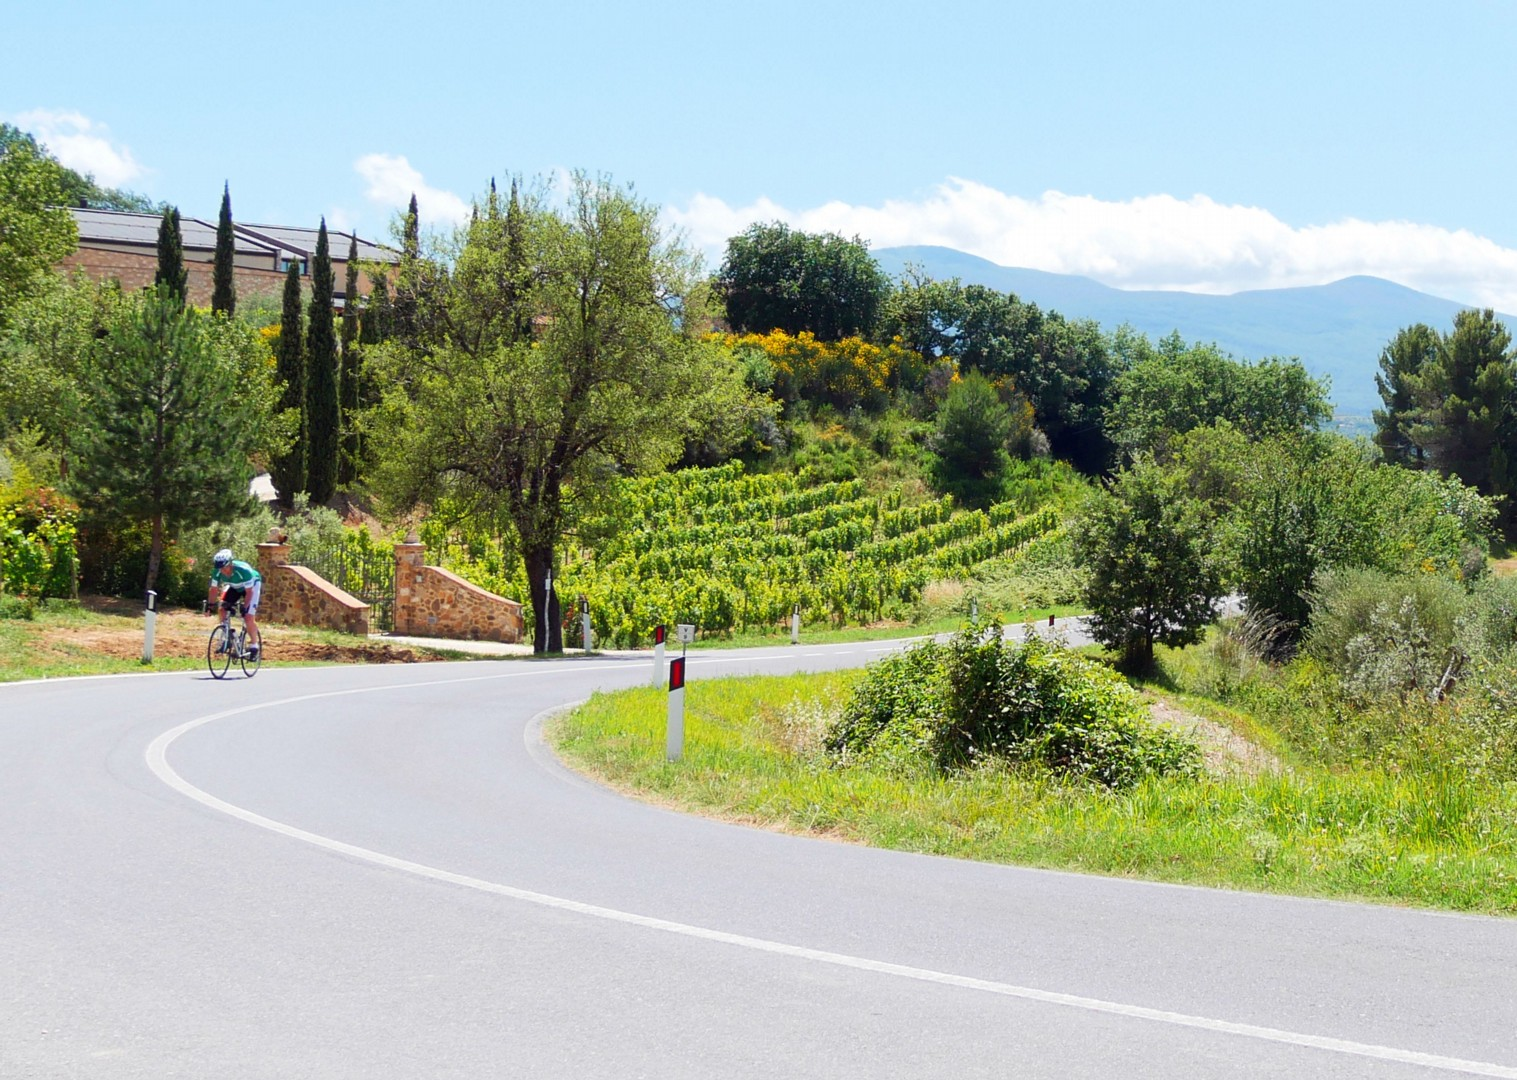 italy-tuscany-cycling-holiday.jpg - Italy - Tuscany Tourer - Guided Road Cycling Holiday - Road Cycling